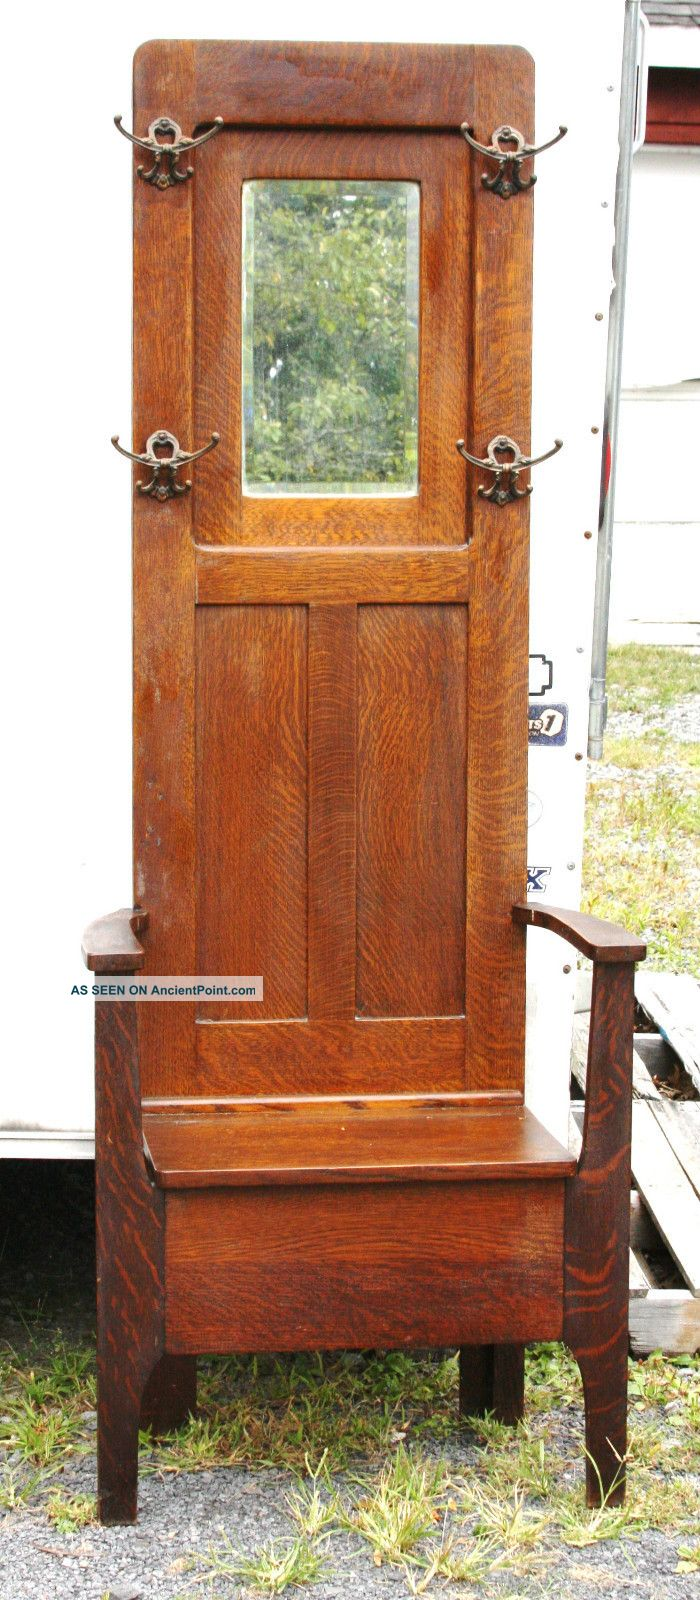 Circa 1890s Oak Hall Stand With Mirror Top And Lift Top Bench Seat - Very Clean 1800-1899 photo